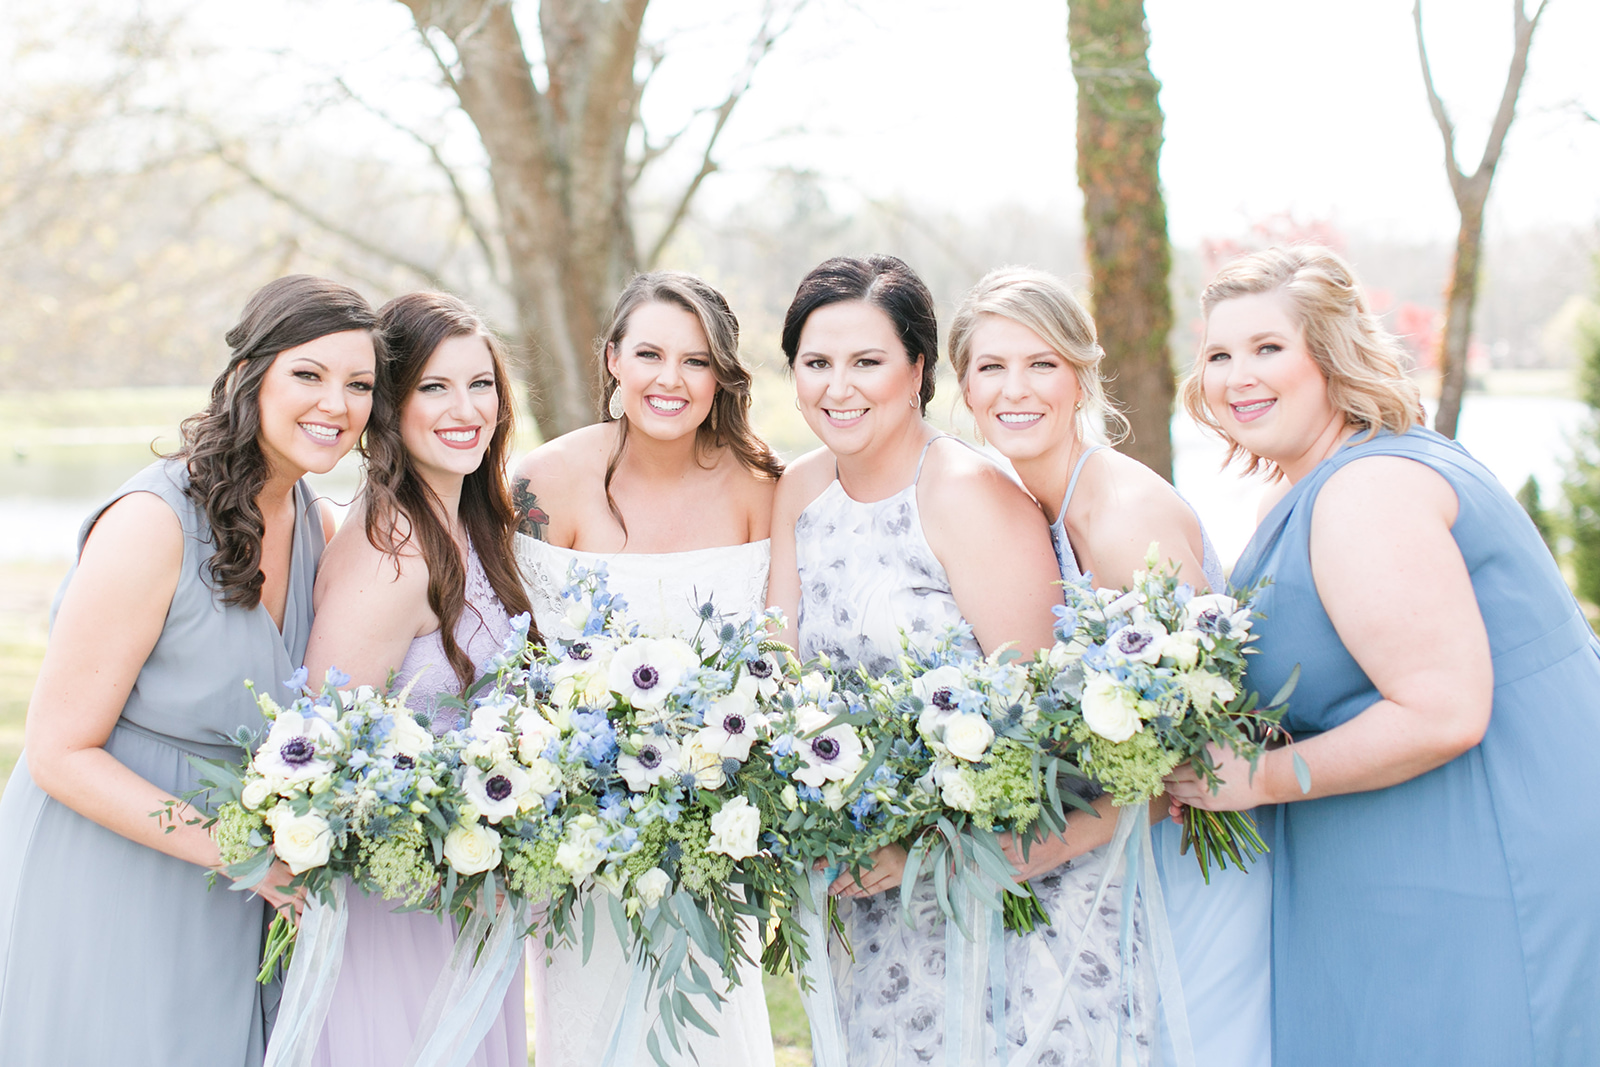 A Garden Georgia Wedding - The Venue at Tryphena's Garden - The Overwhelmed Bride Wedding Blog